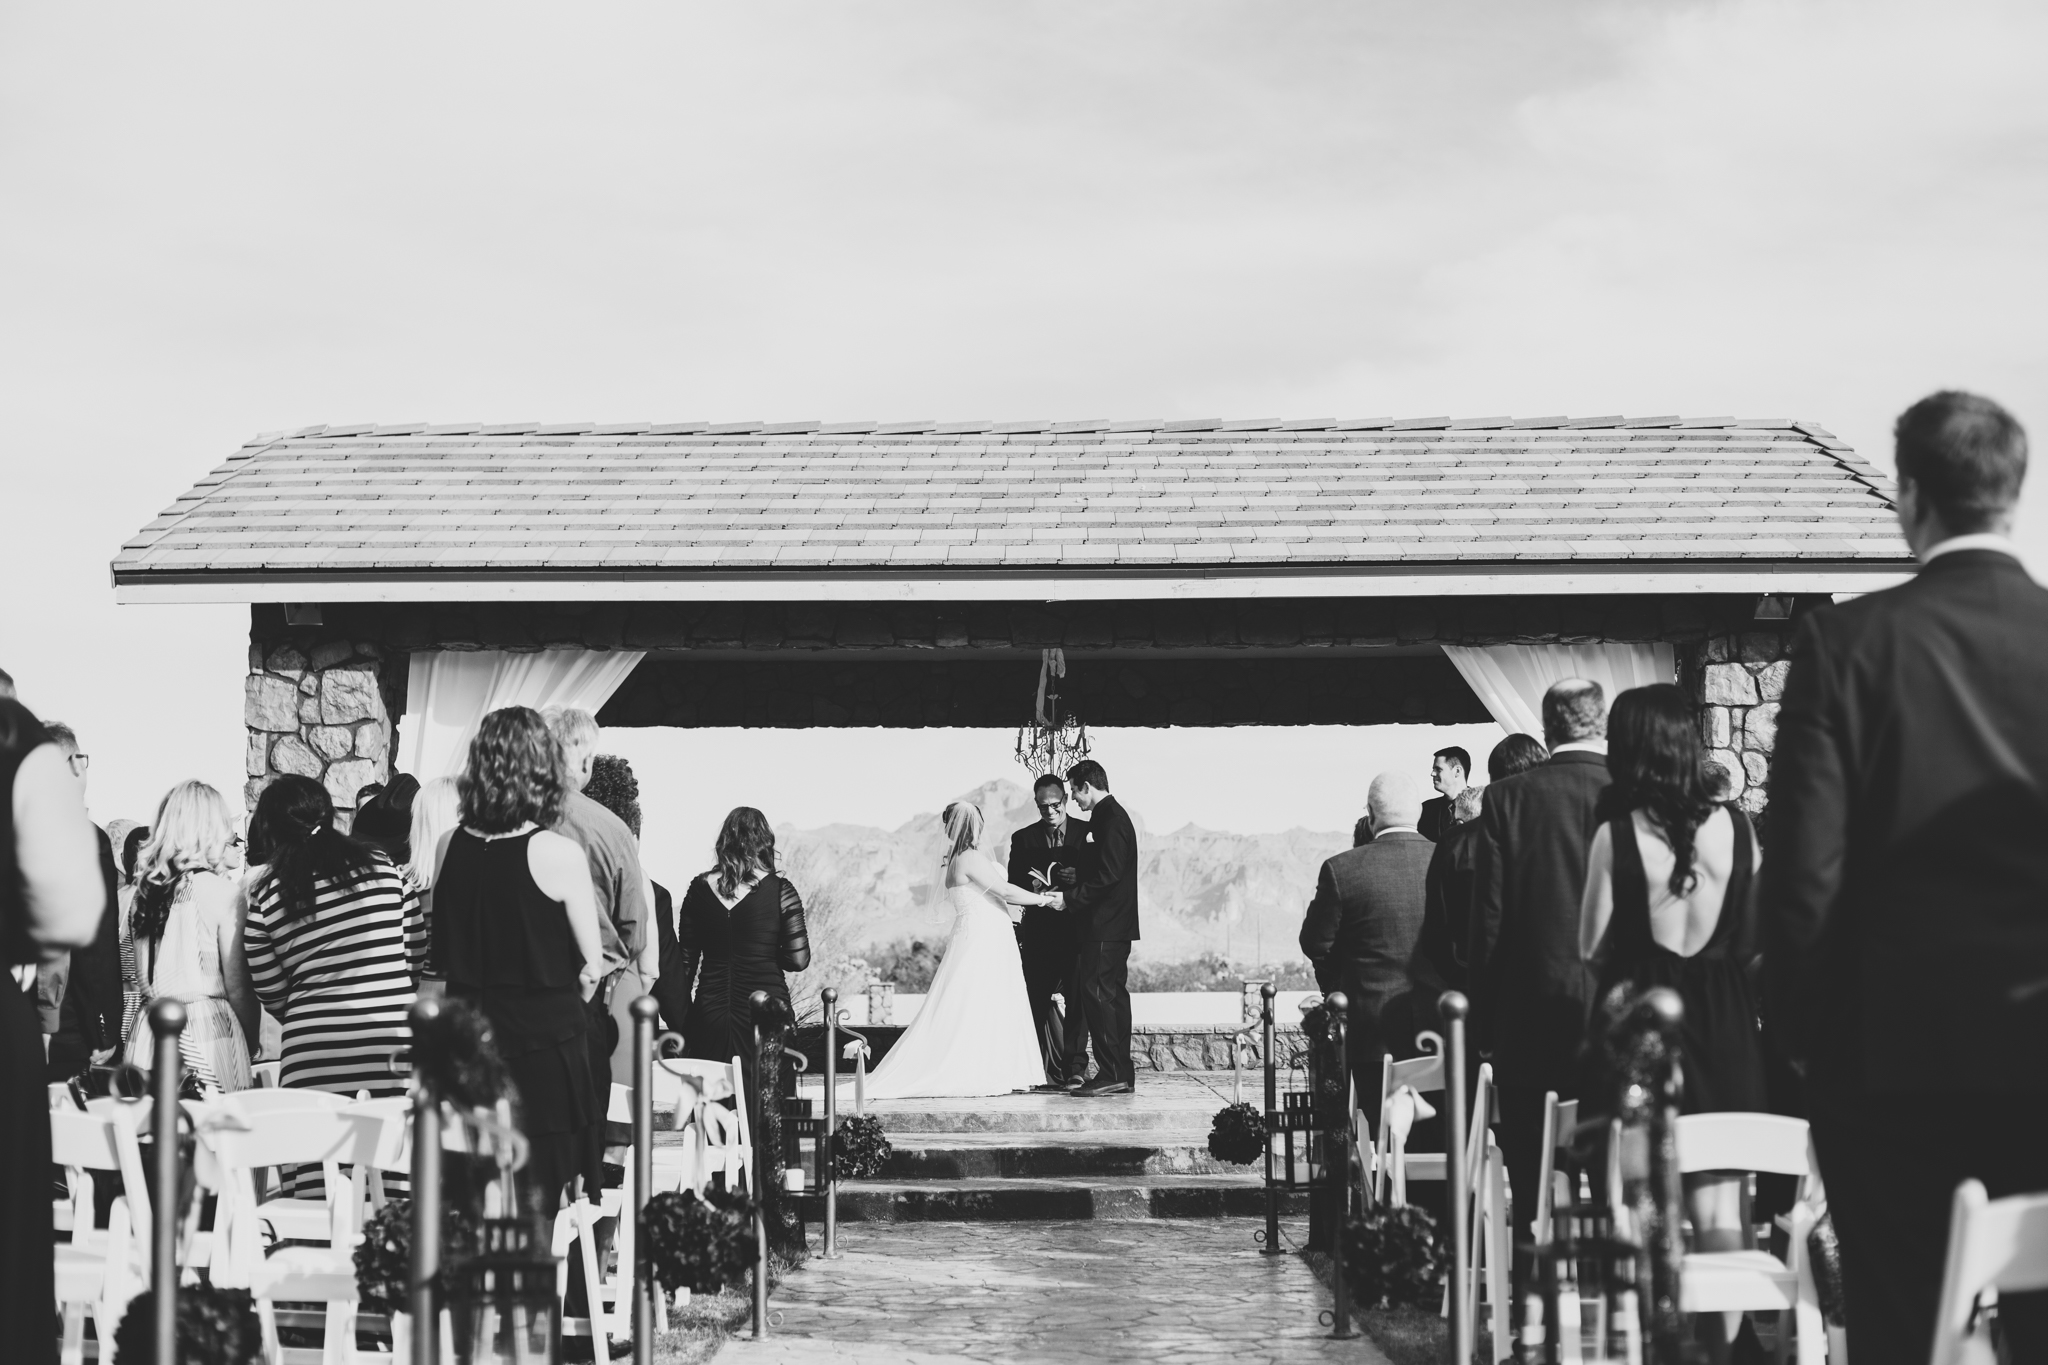 wide angle superstition manor ceremony bw from aisle mj